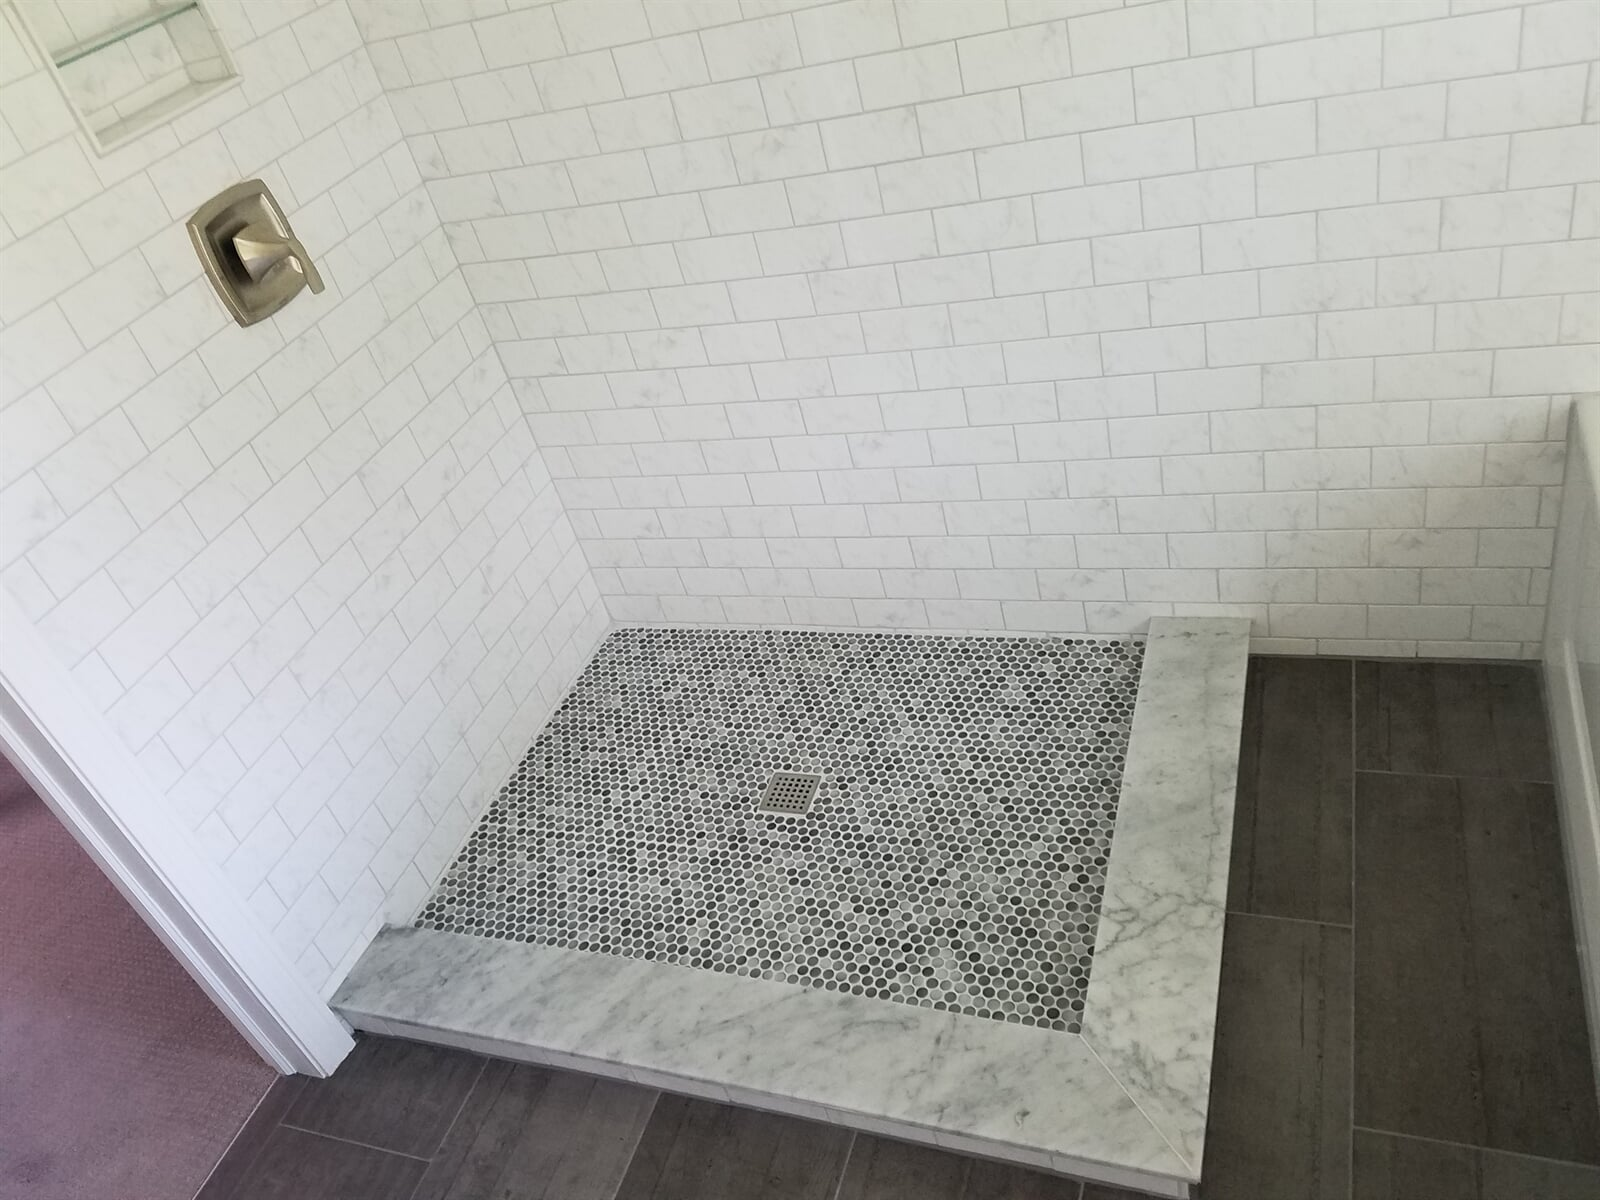 Custom Tile Flooring in Bathroom Shower installed by RS Home Repair Services